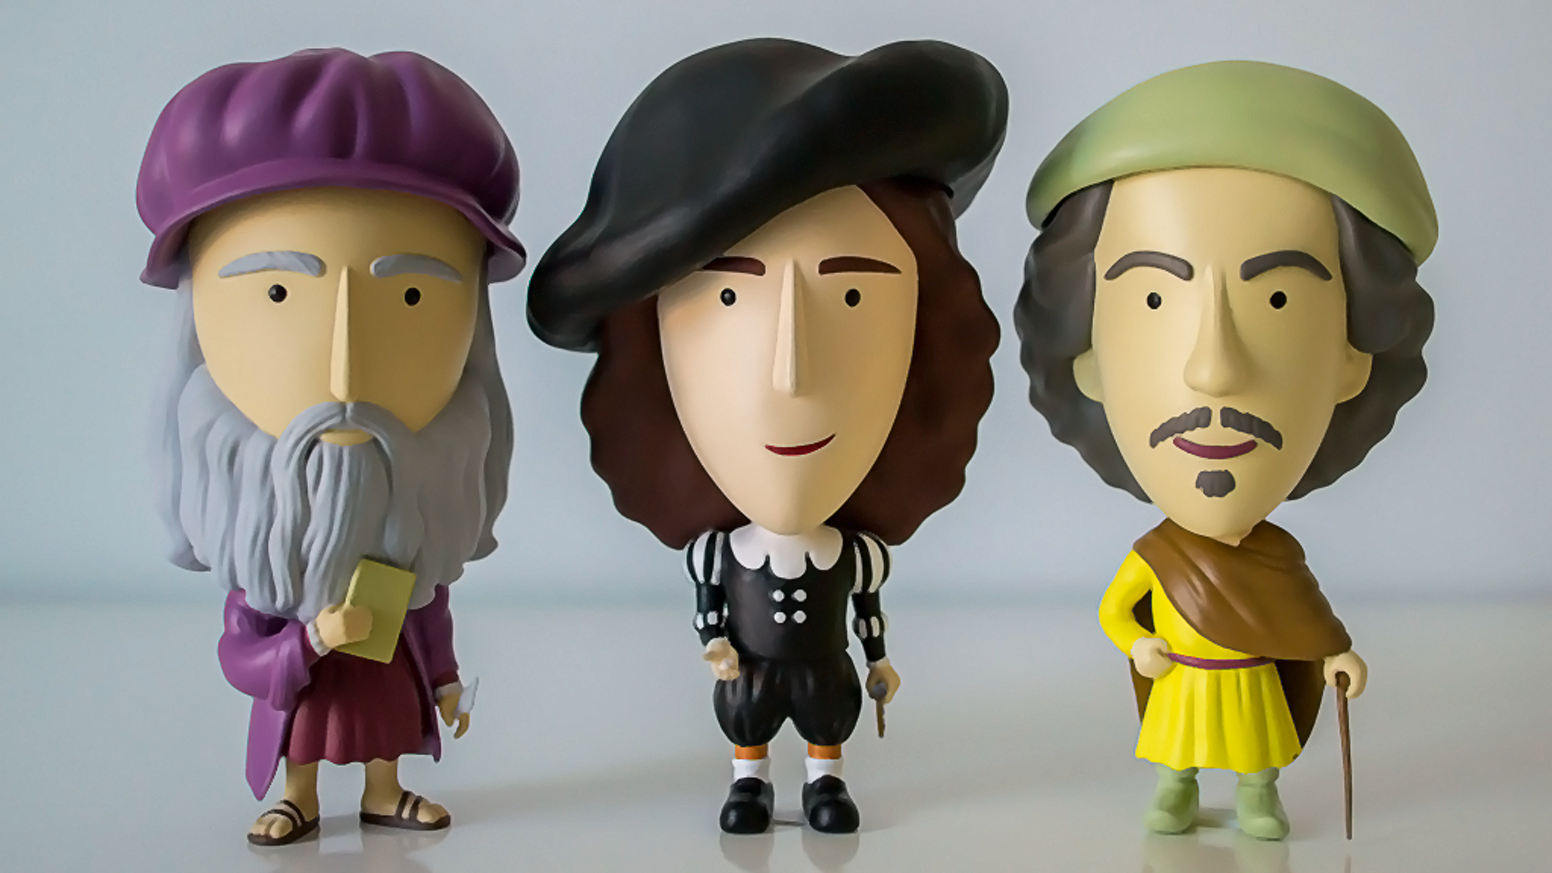 We made it! We are turning three Old Masters into charming action figures.